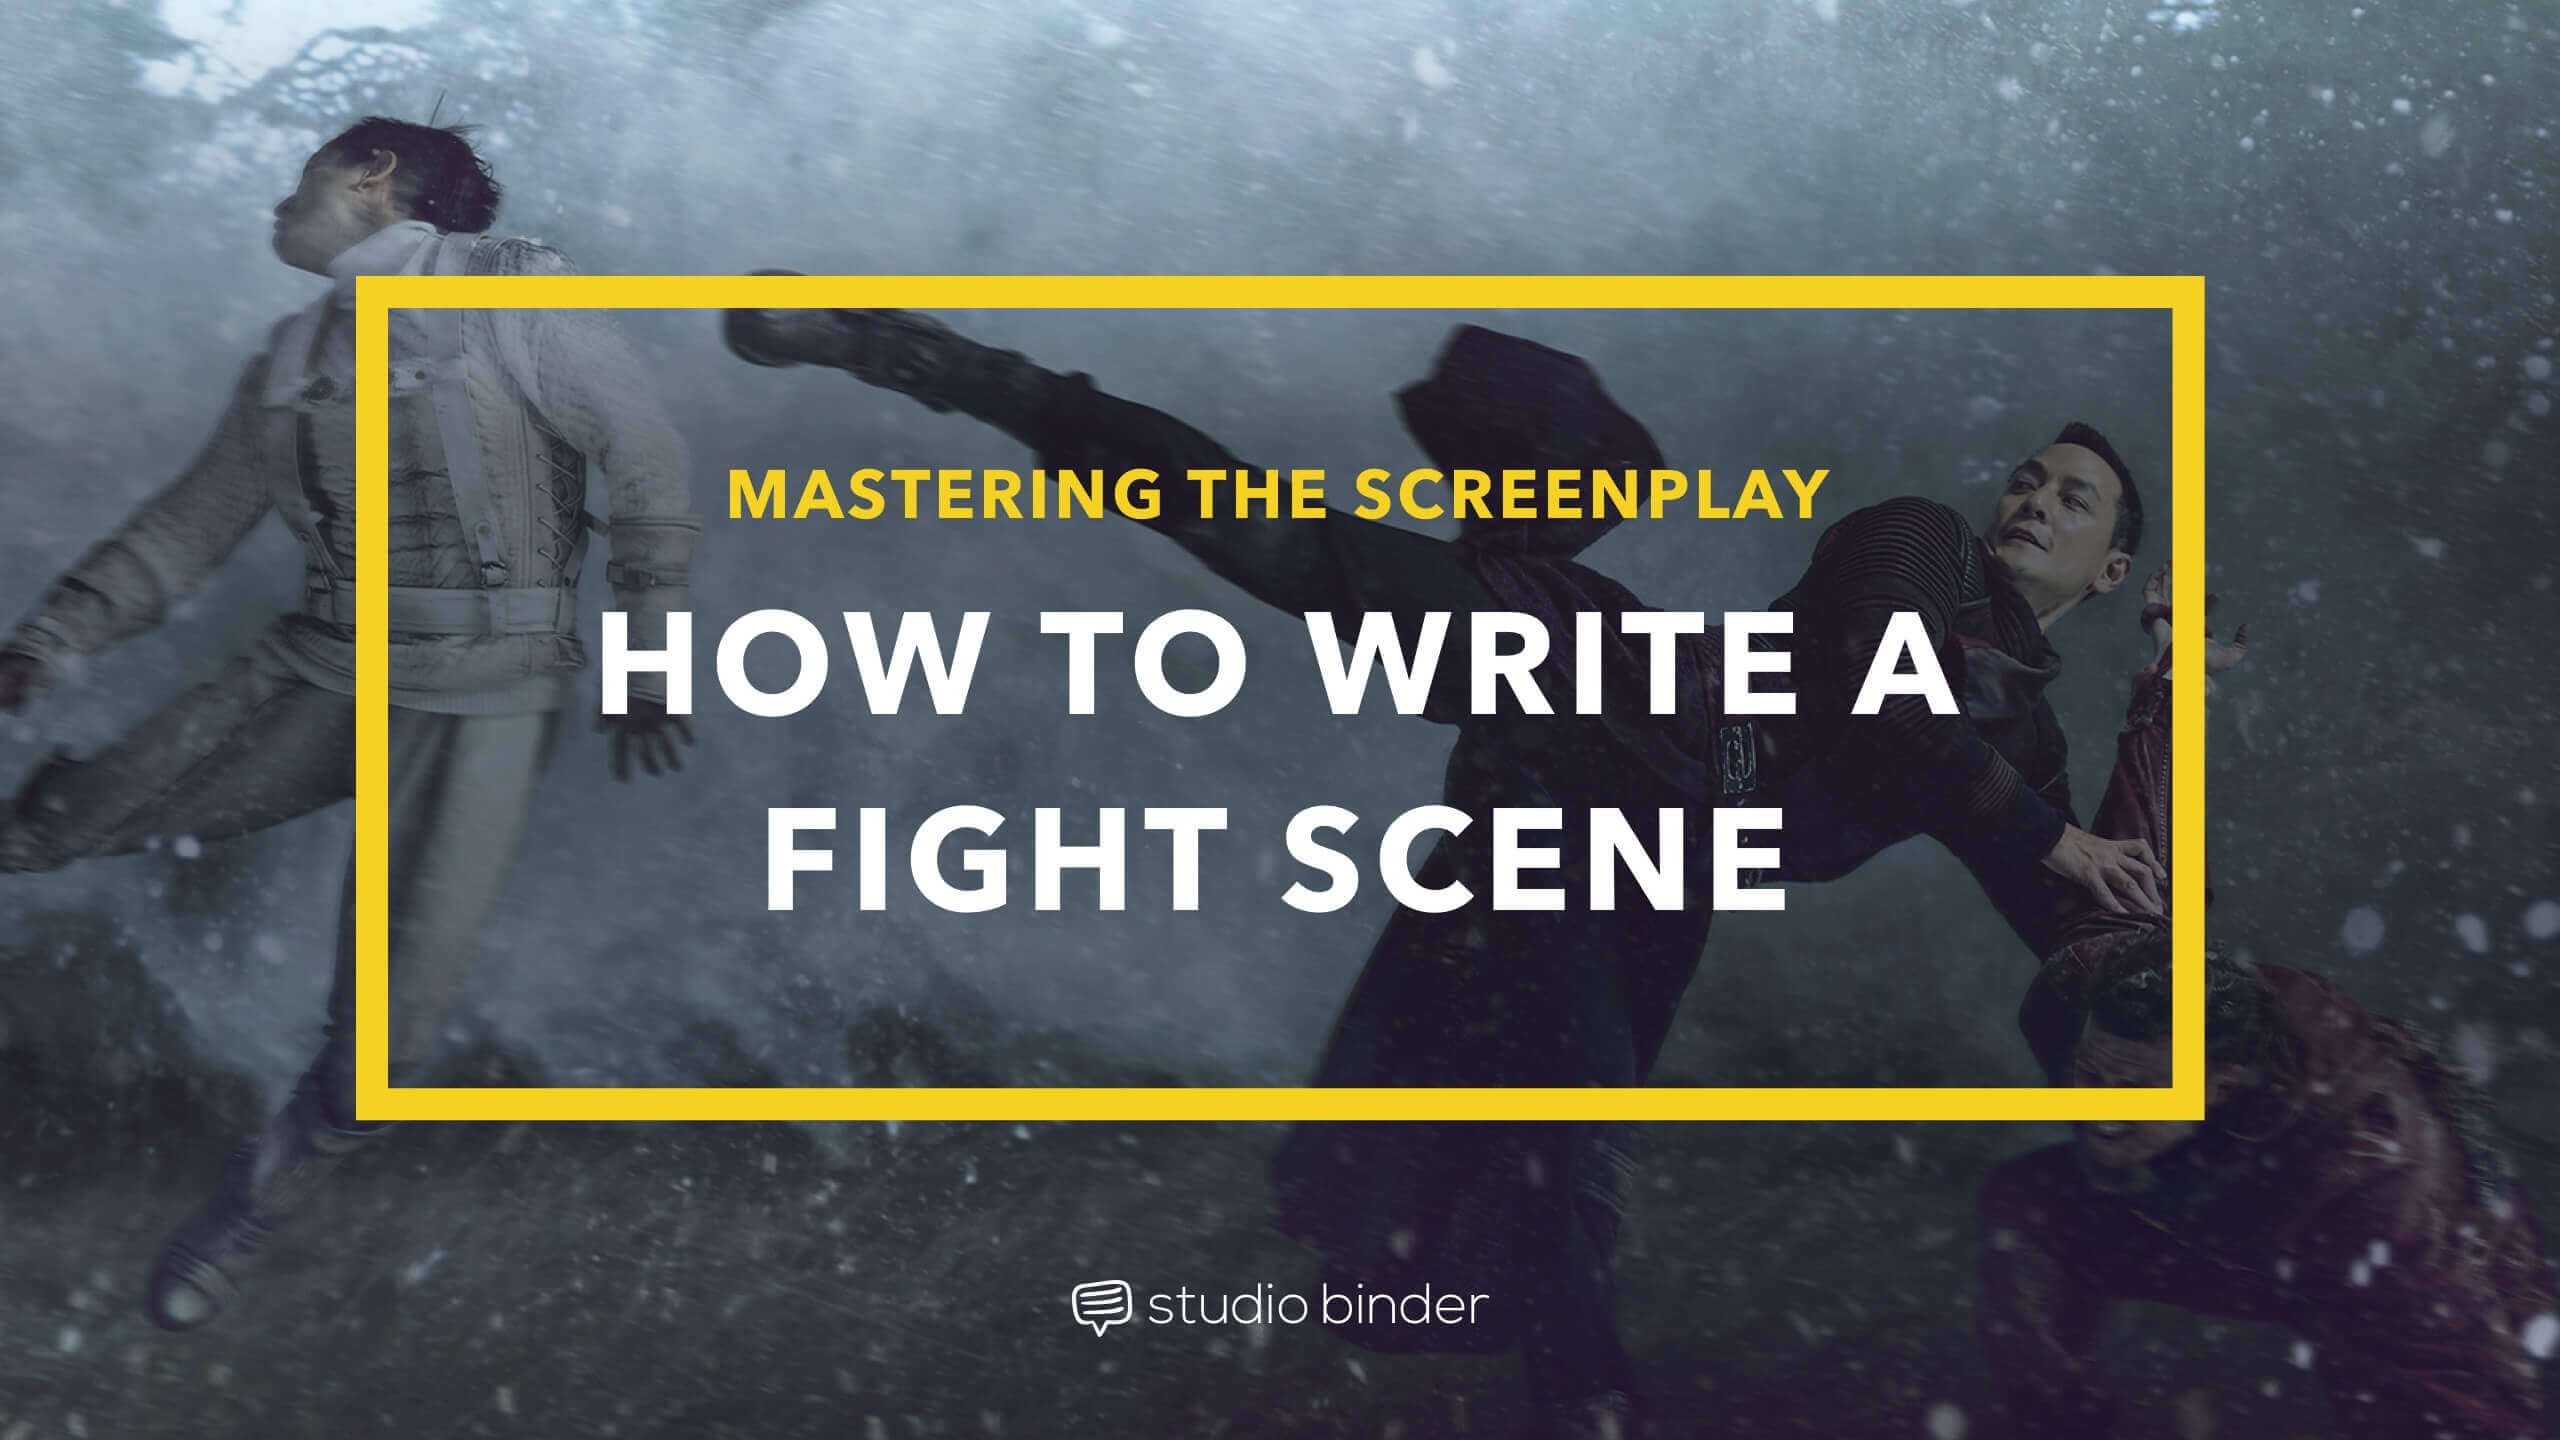 mastering the screenplay  how to write an epic fight scene